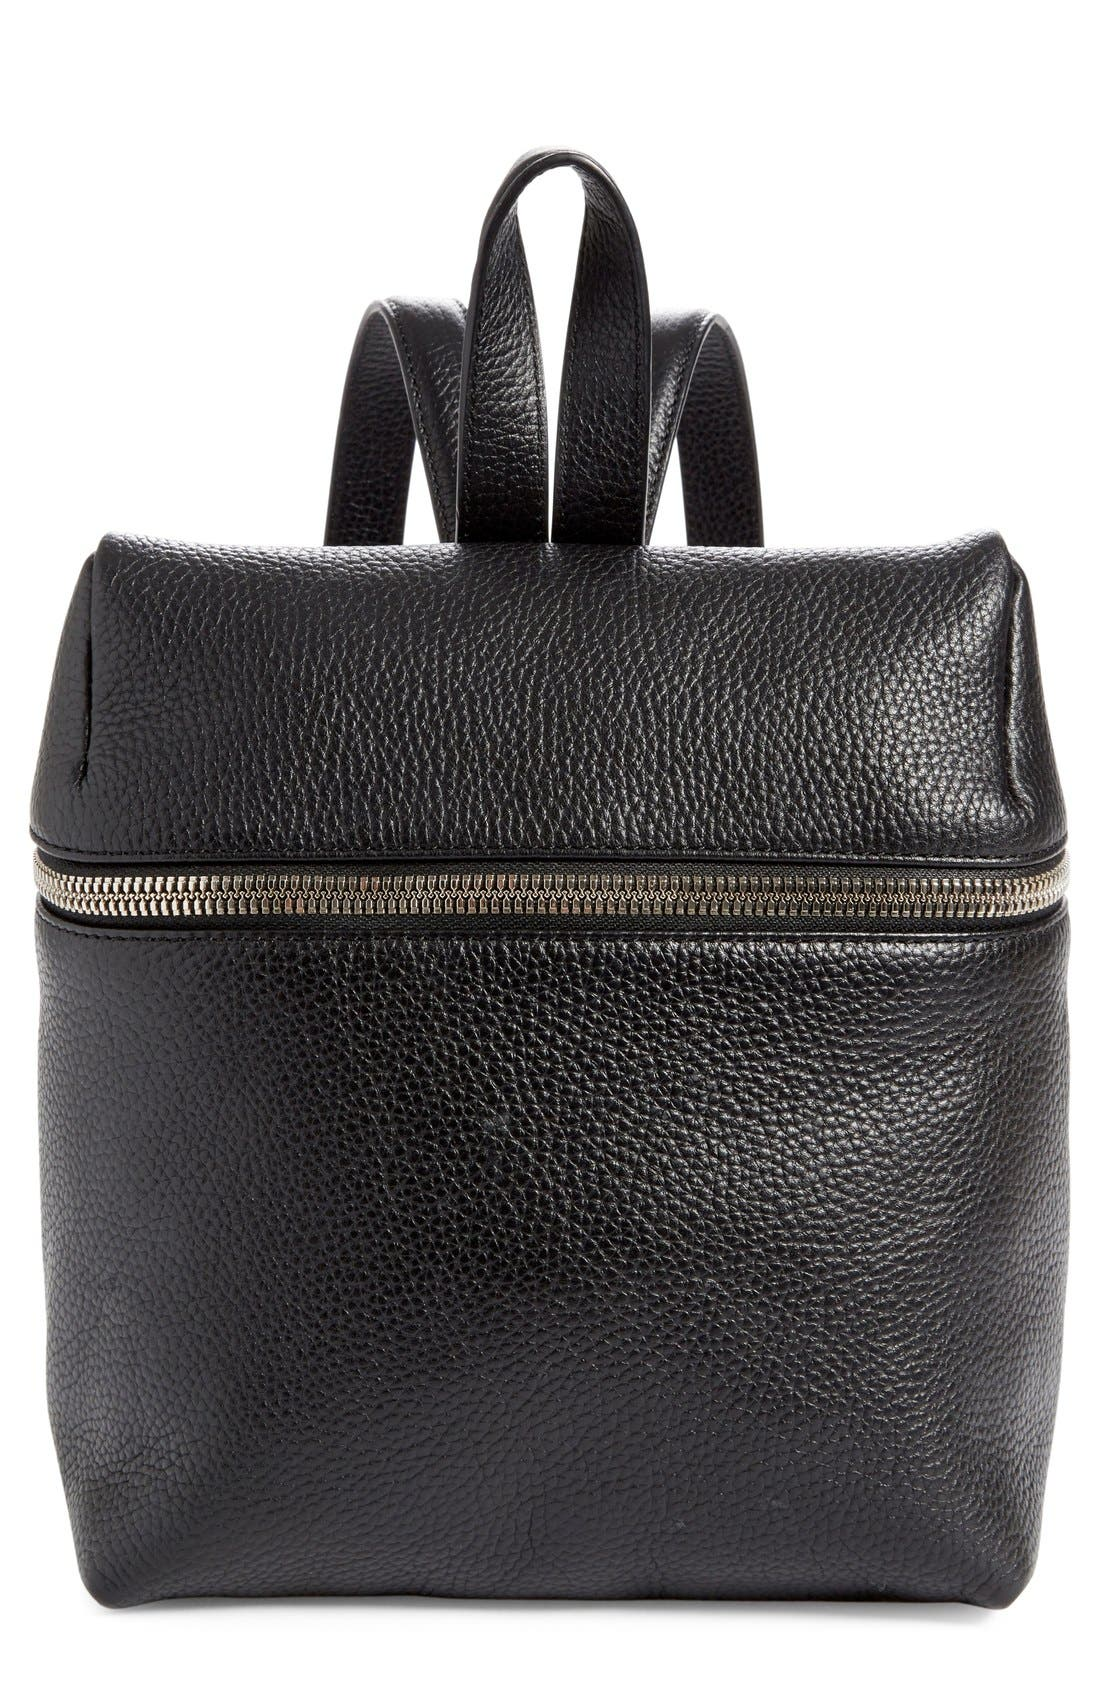 Small Pebbled Leather Backpack,                         Main,                         color, BLACK